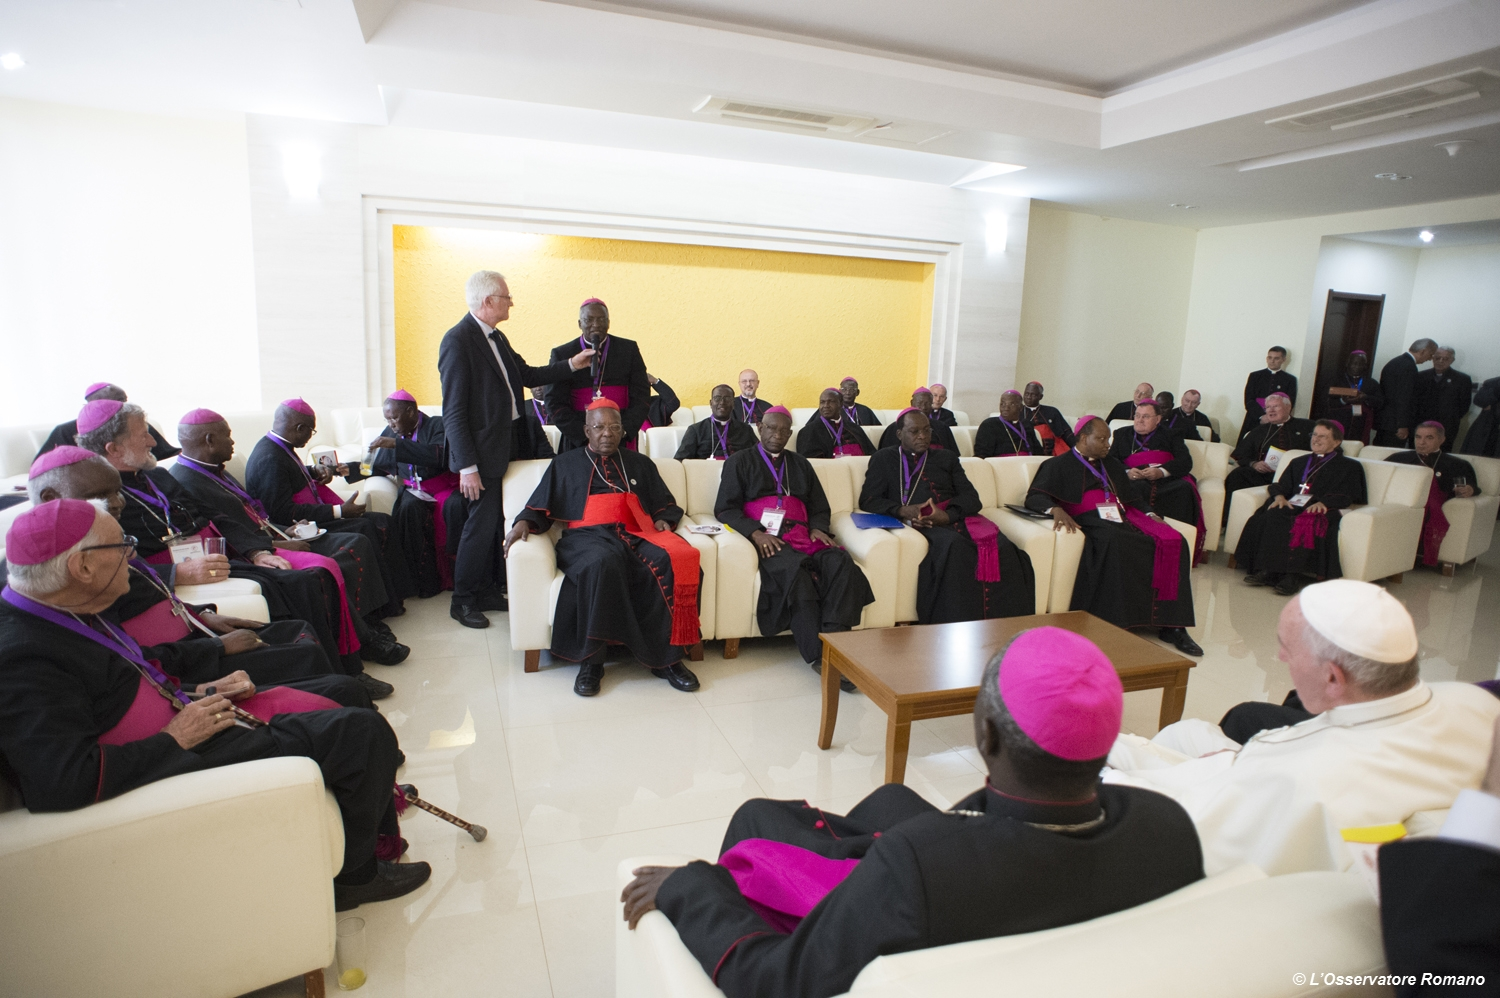 Pope Francis' meeting with the bishops of Kenya in the VIP-Room of the Kasarani Stadium